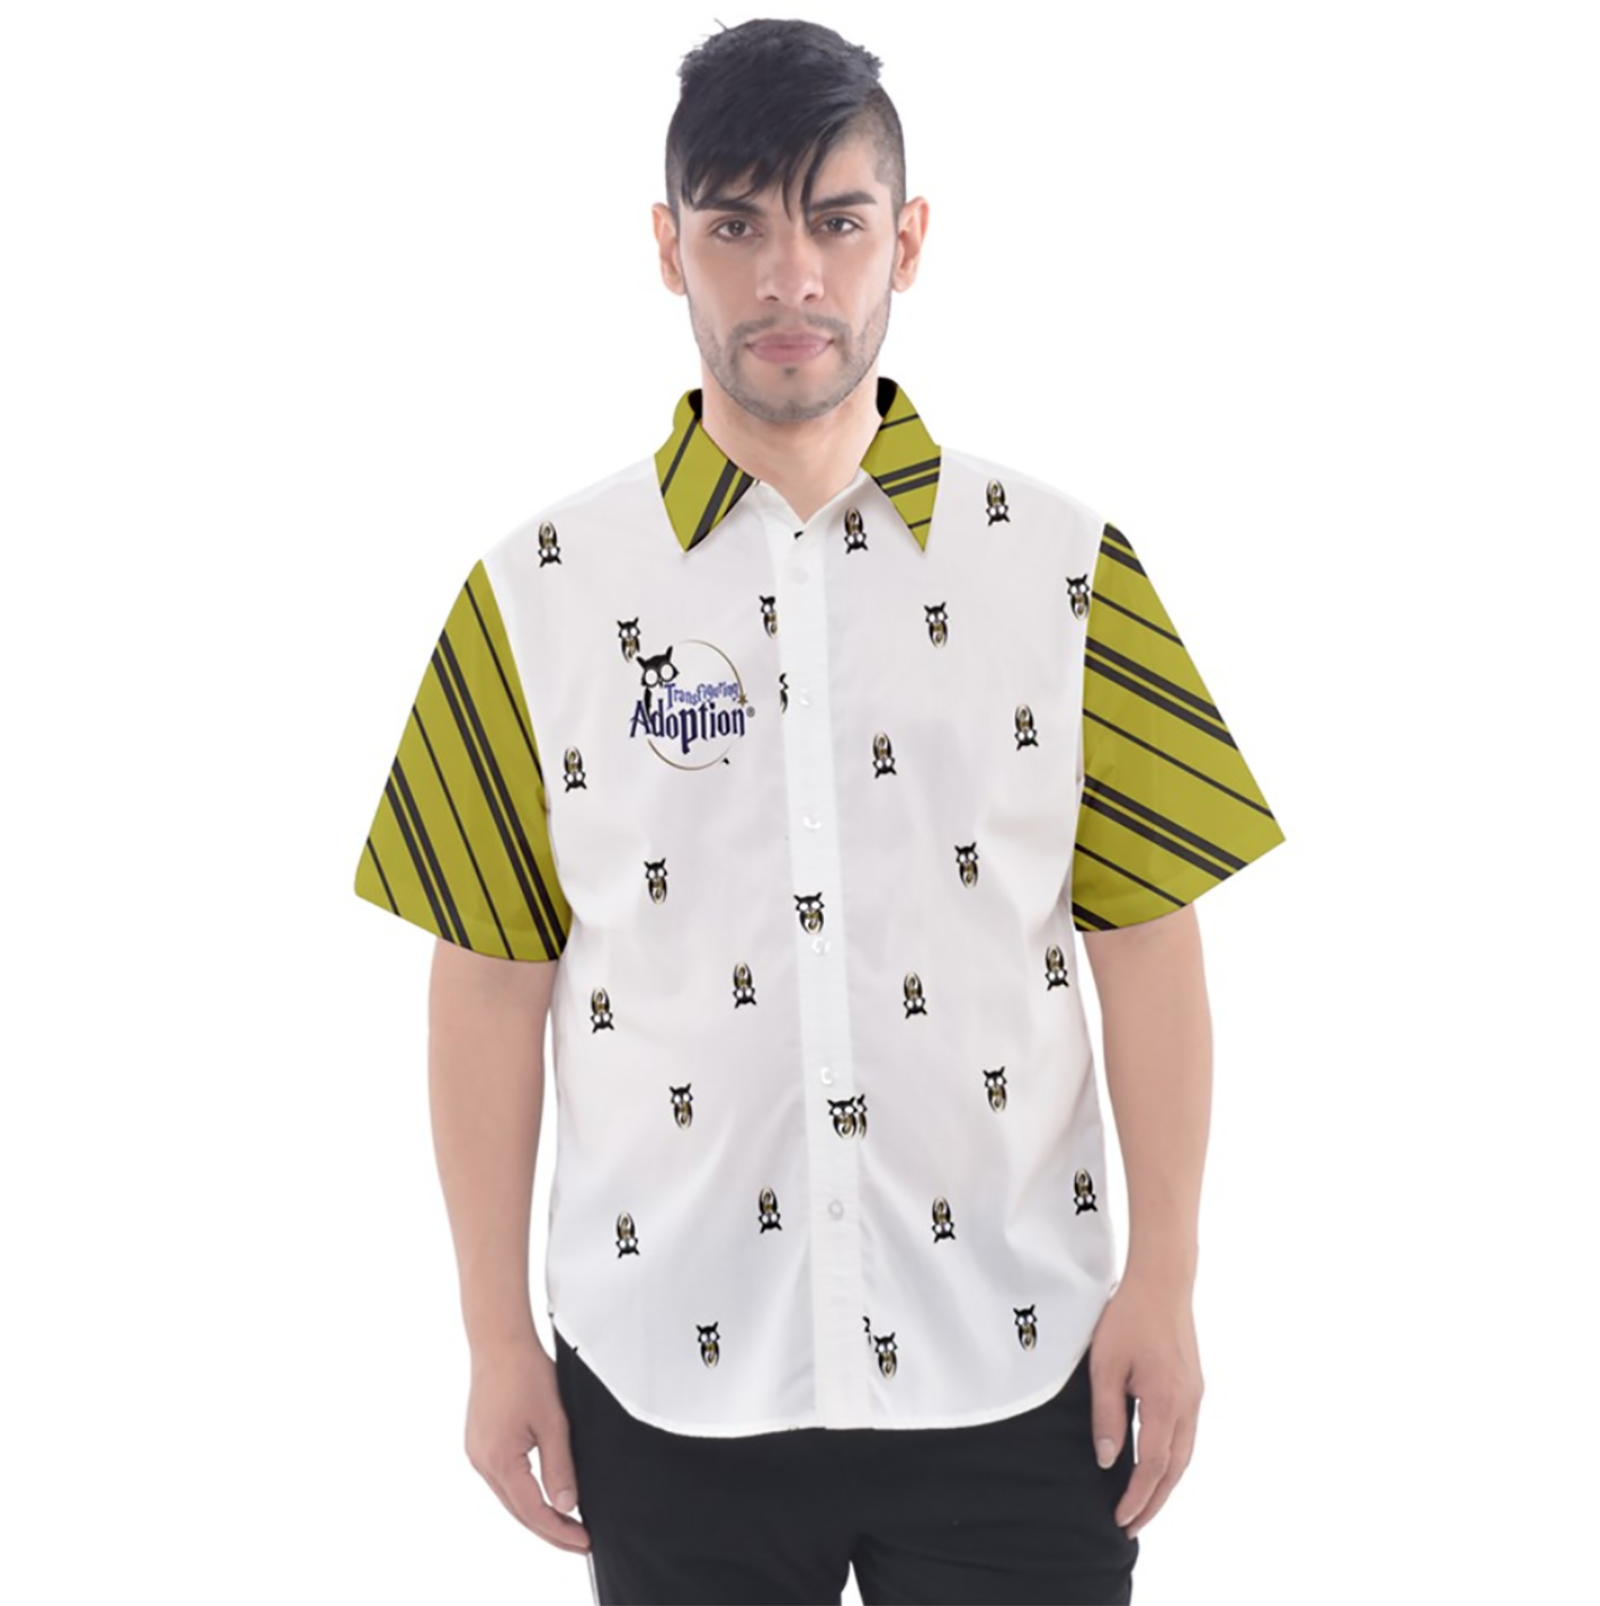 Yellow & Black Owl Patterned Button Up Short Sleeve Shirt - Inspired by Hufflepuff House